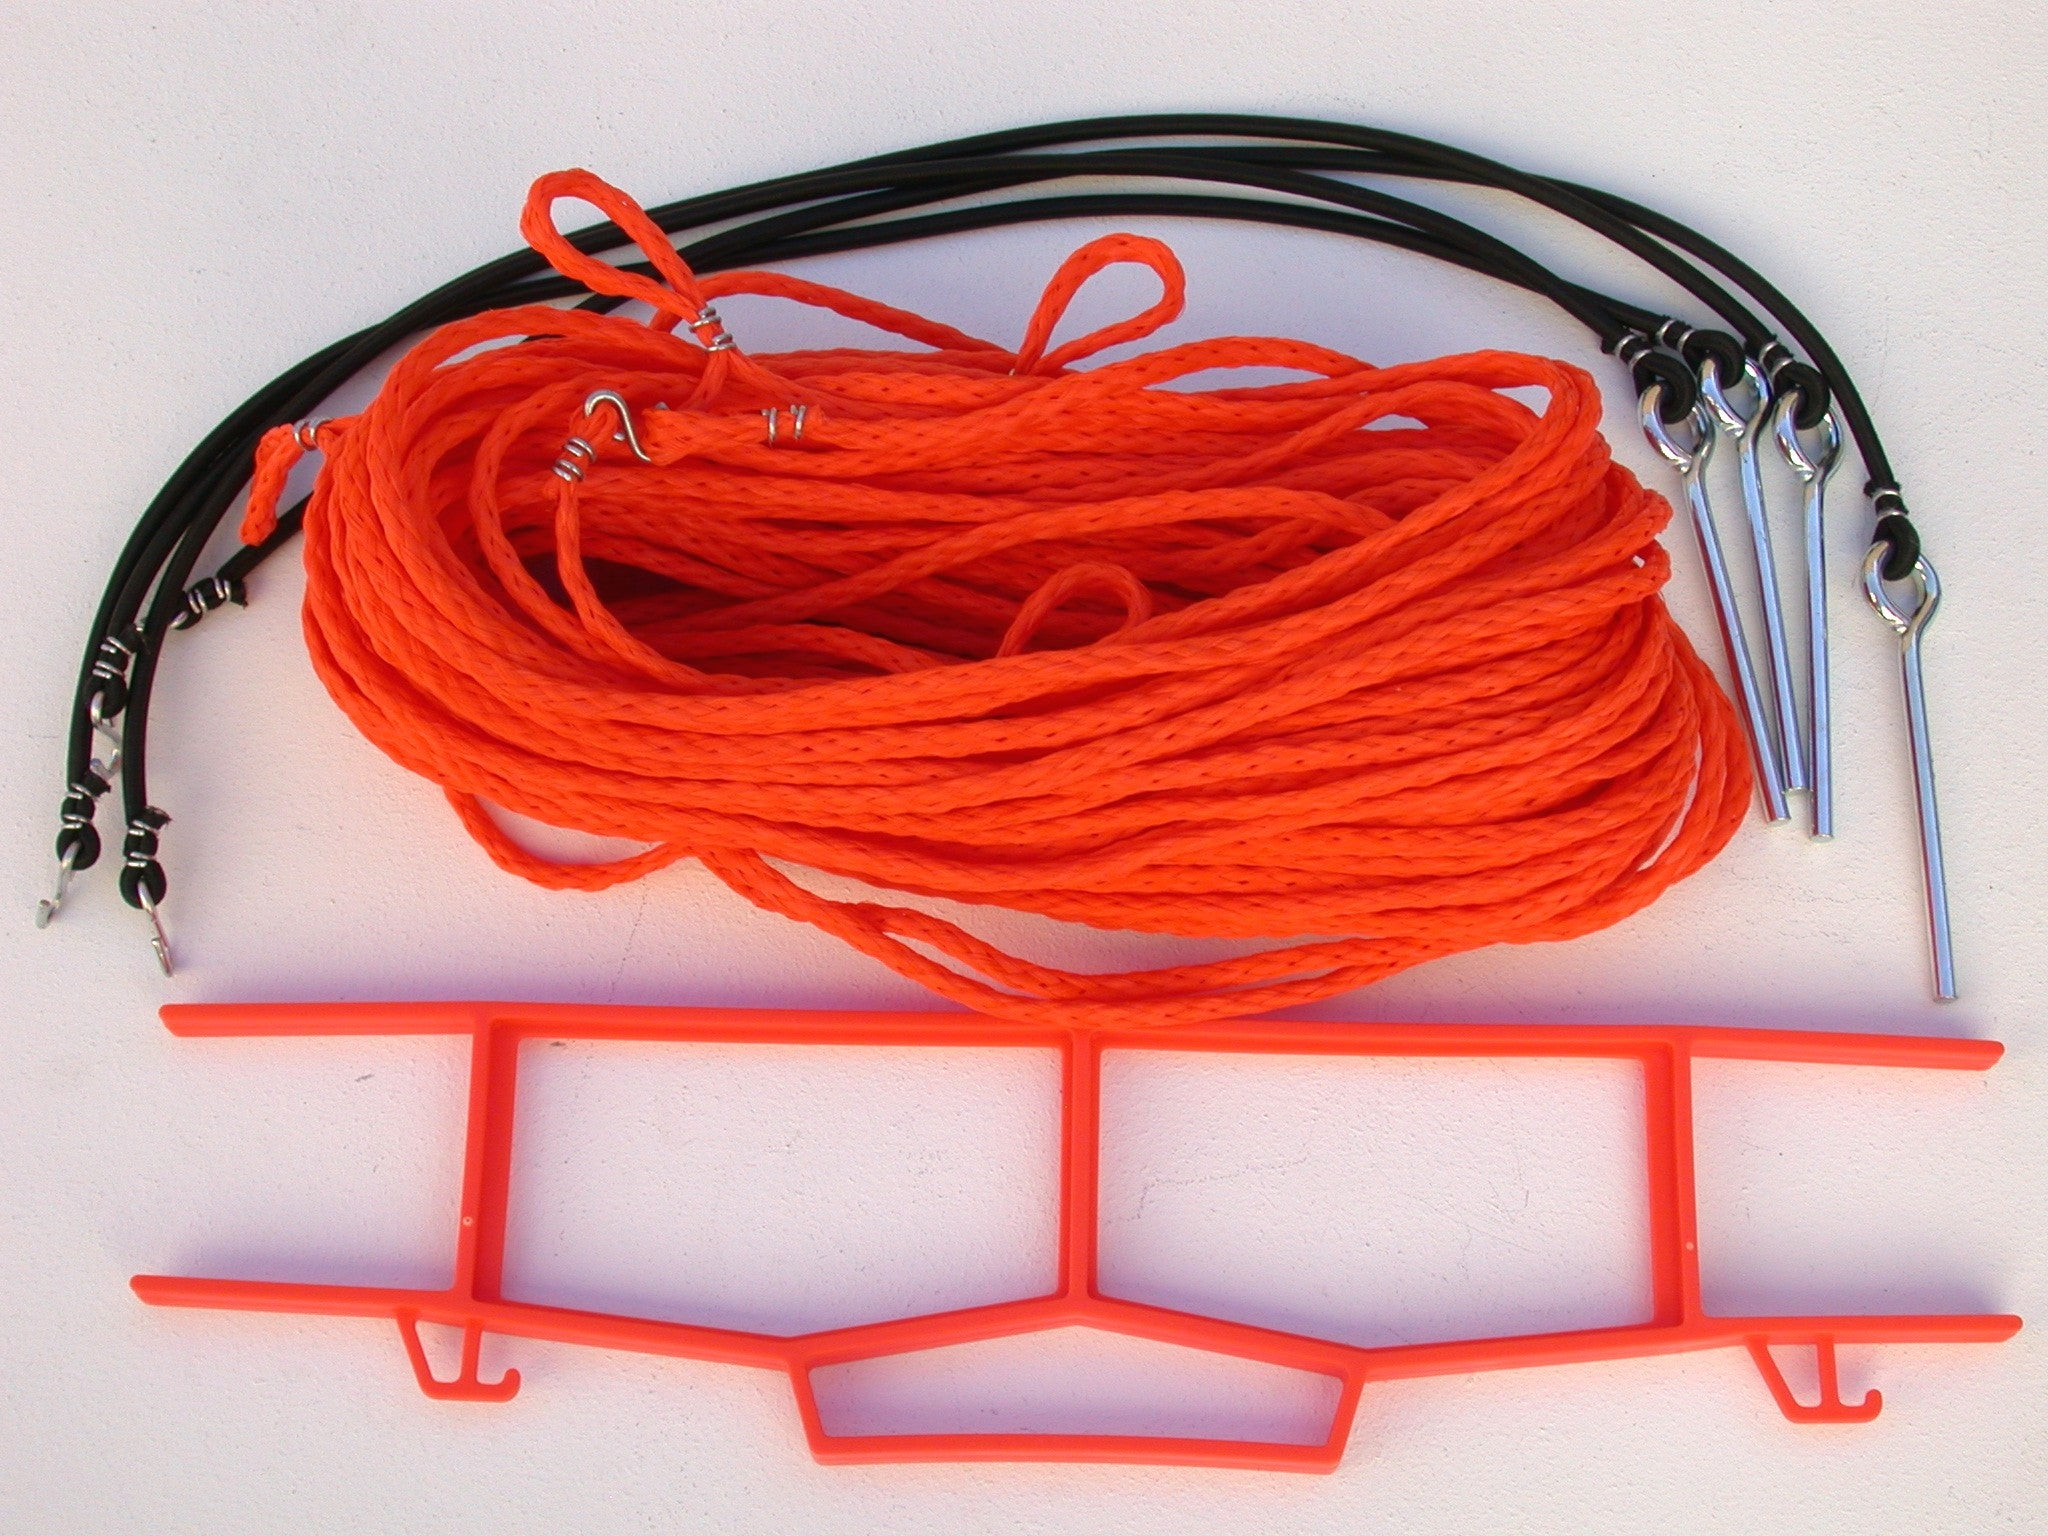 25OG-orange 1/4-inch non-adjustable rope boundary, grass pegs, storage winder